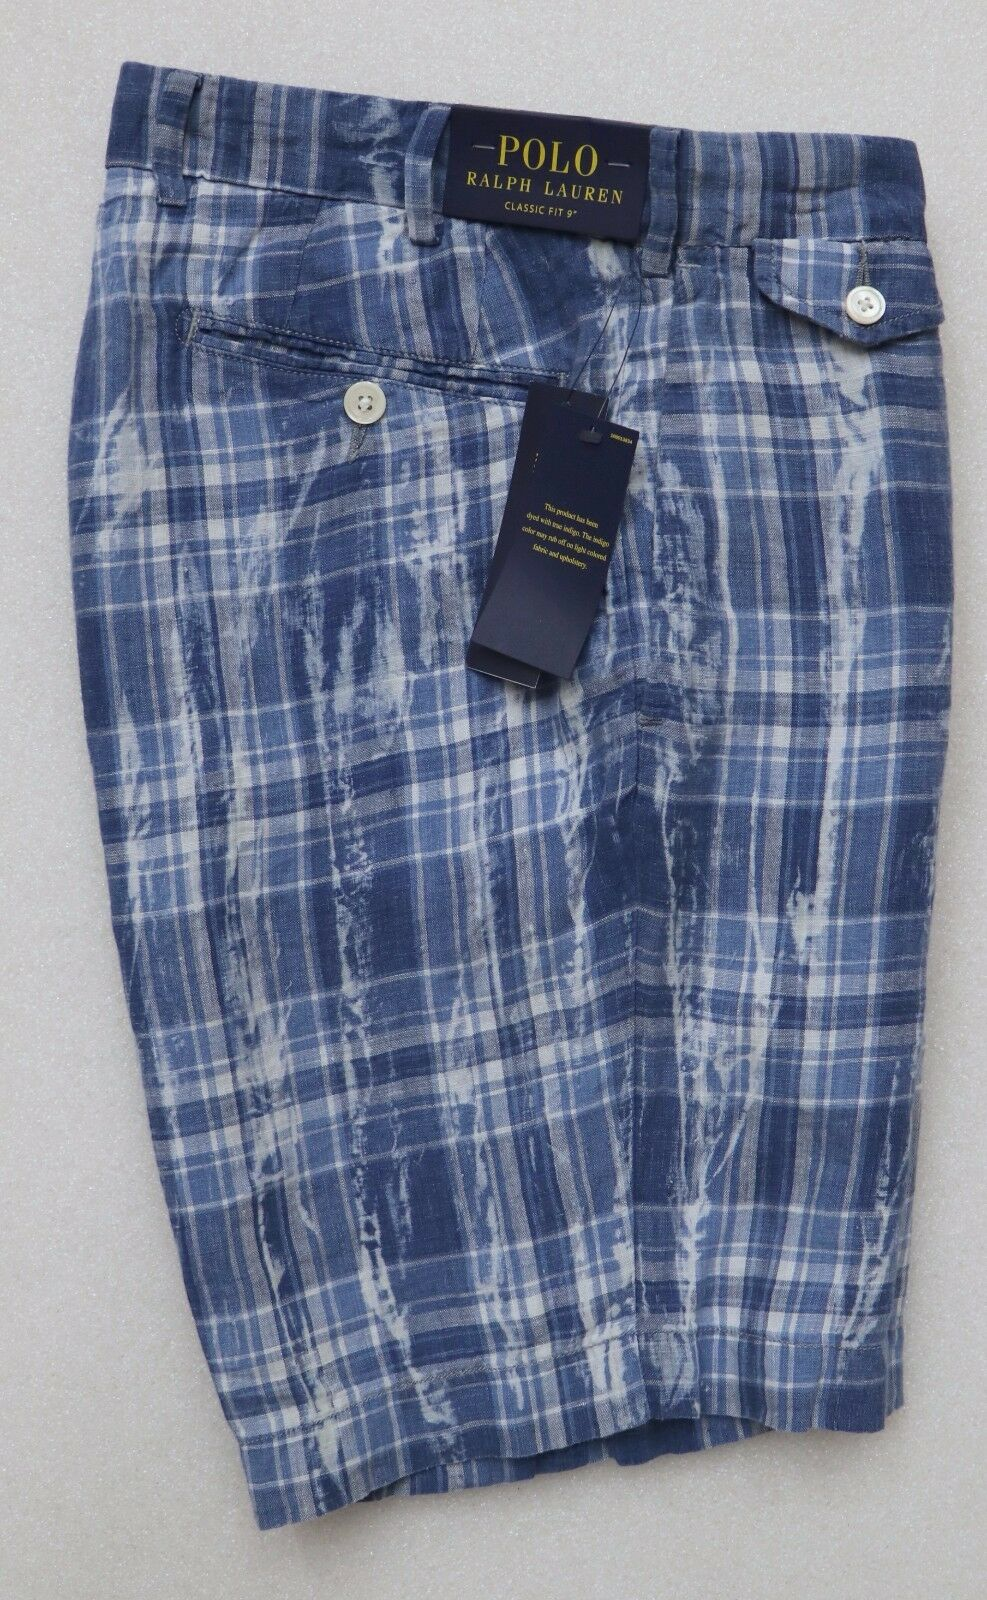 bcf6f3e49c6db5 POLO RALPH LAUREN MEN S 100% LINEN CASUAL SHORTS INDIA MADRAS blueE PLAID  CLASSIC